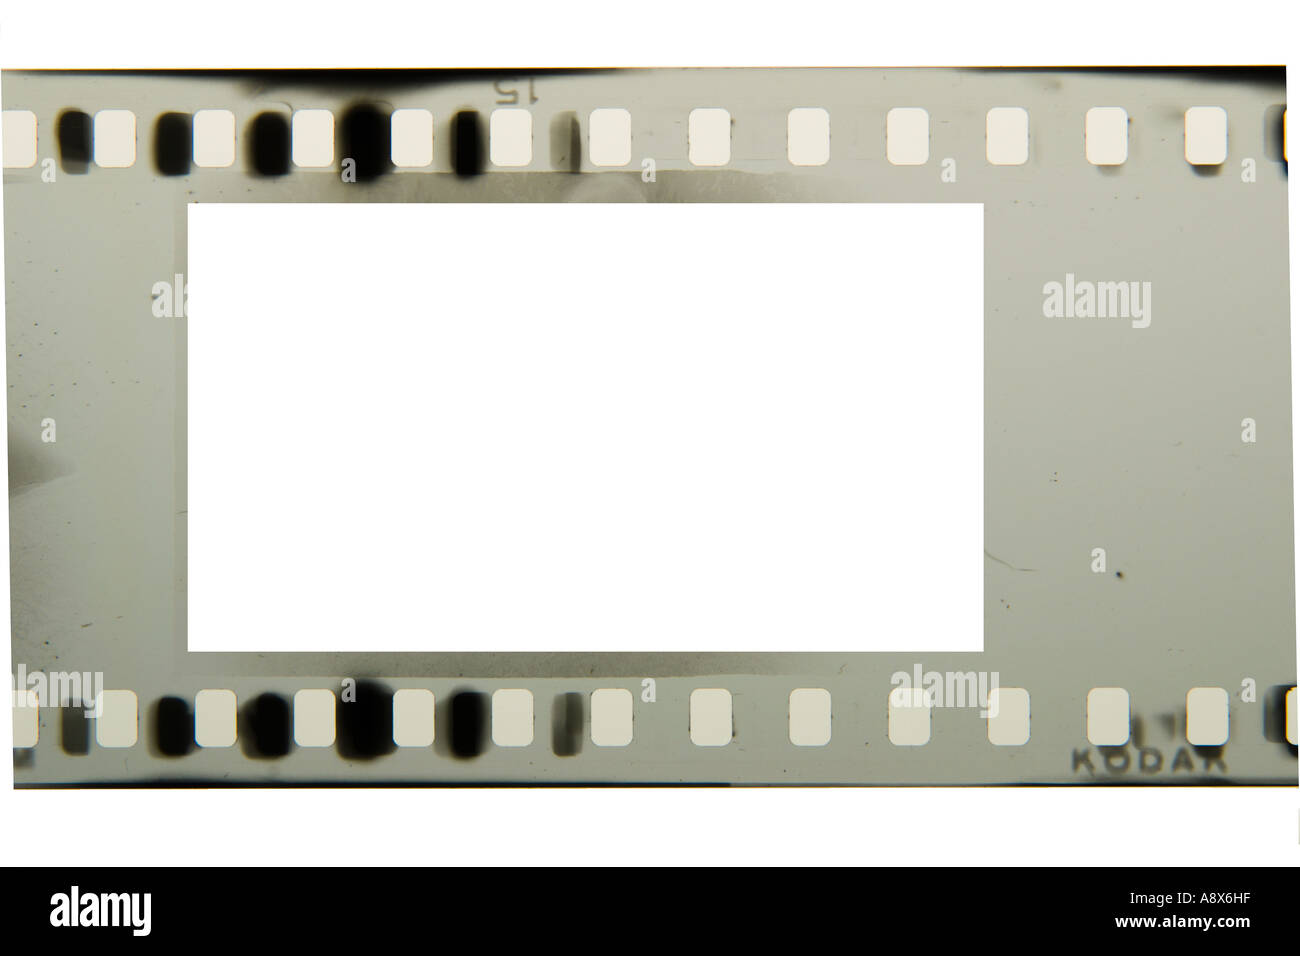 35mm Frame Stock Photos & 35mm Frame Stock Images - Alamy